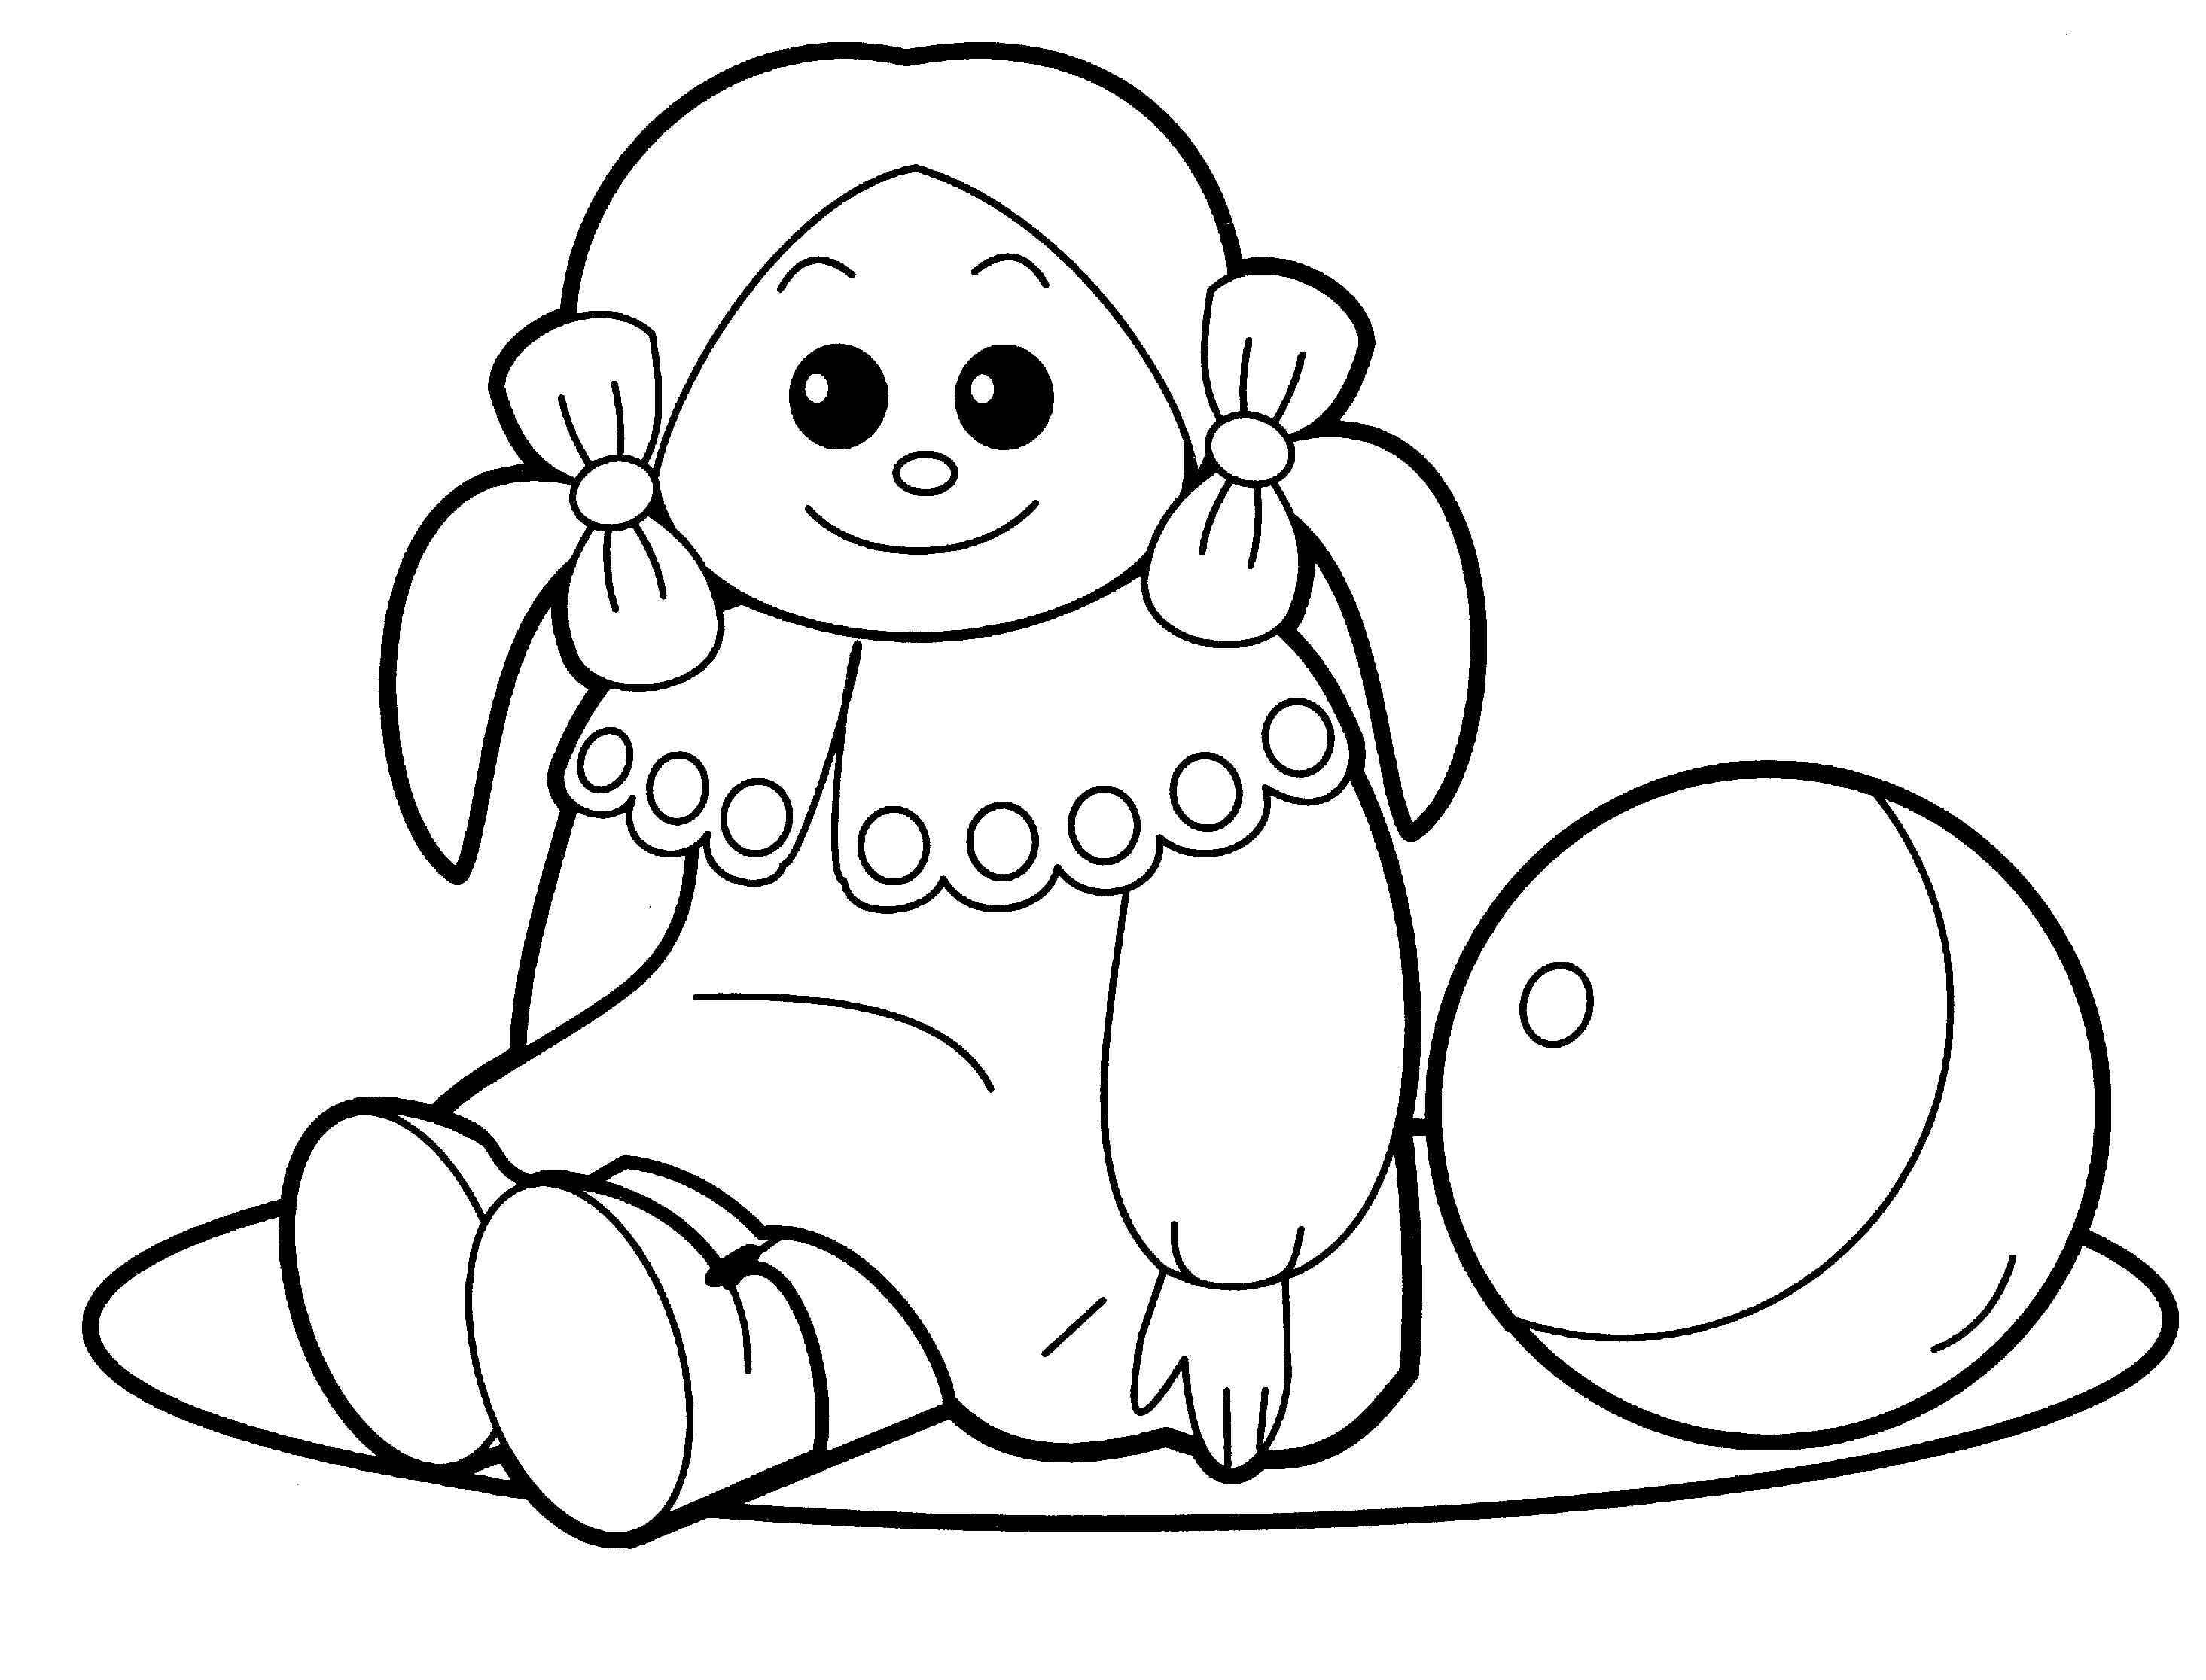 christmas-toys-coloring-pages-kids-printable-wallpaper-hd